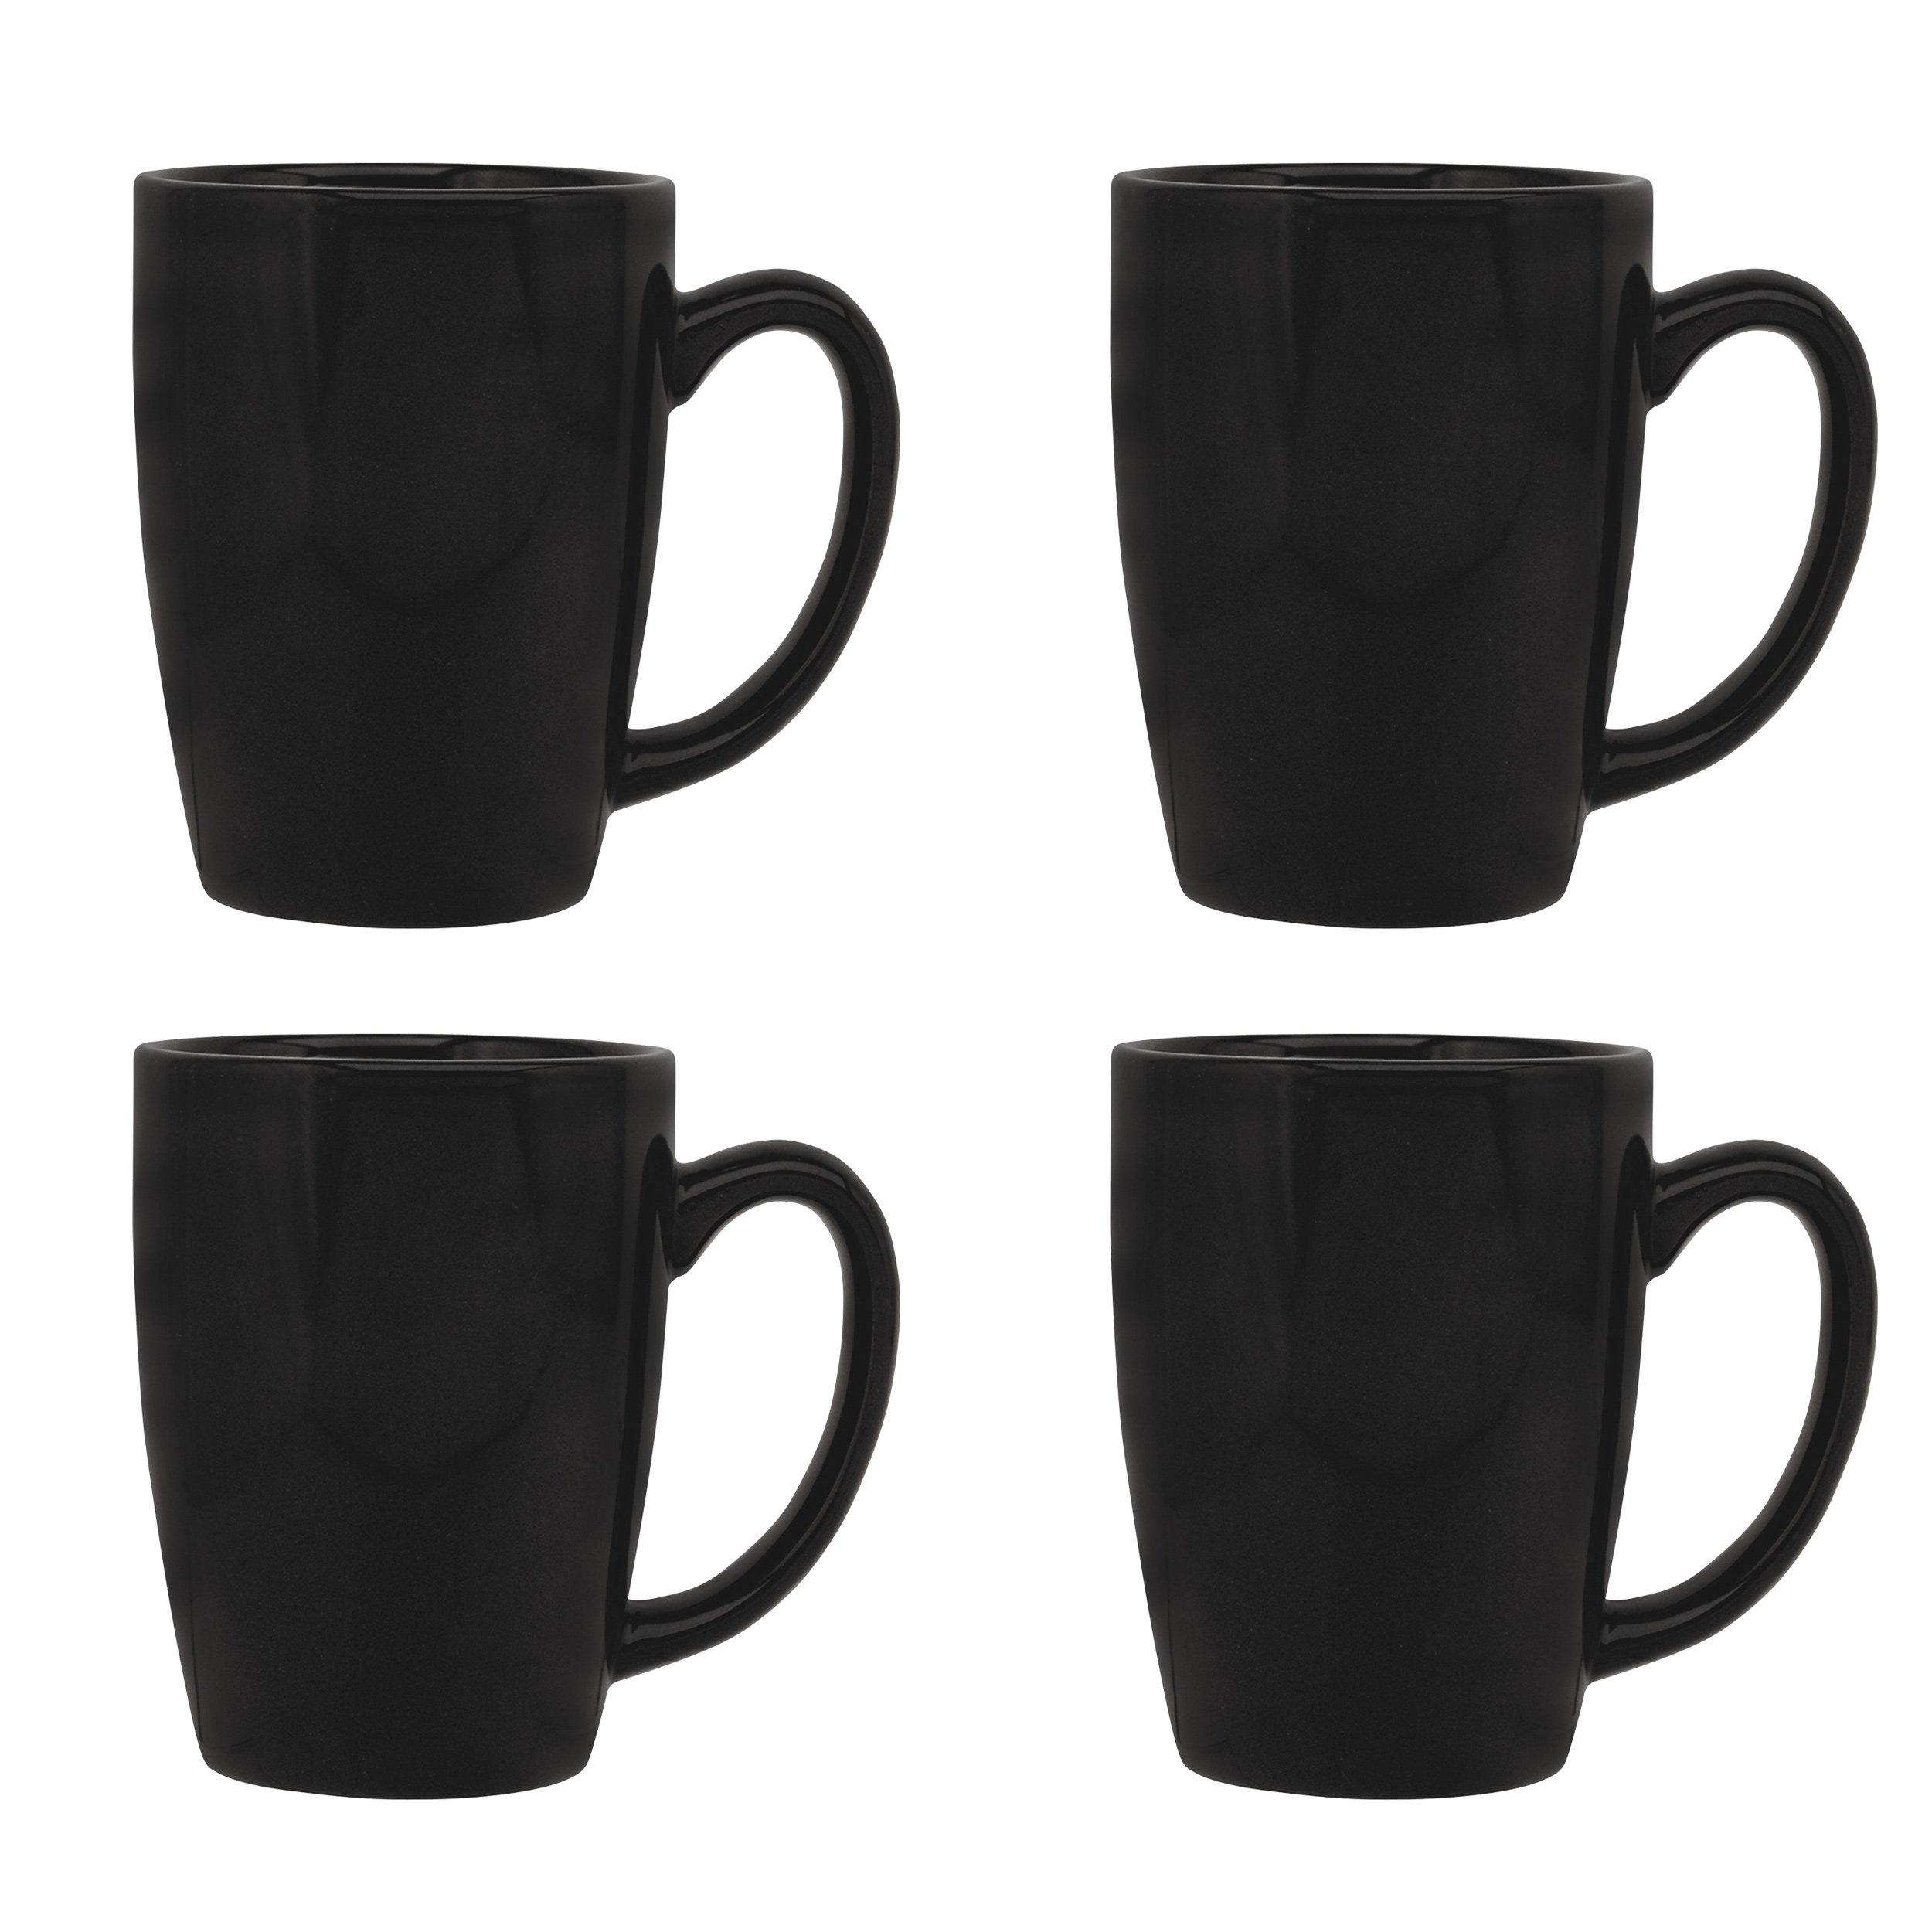 Culver Taza Ceramic Mug 16-Ounce Set of 4 (Black)